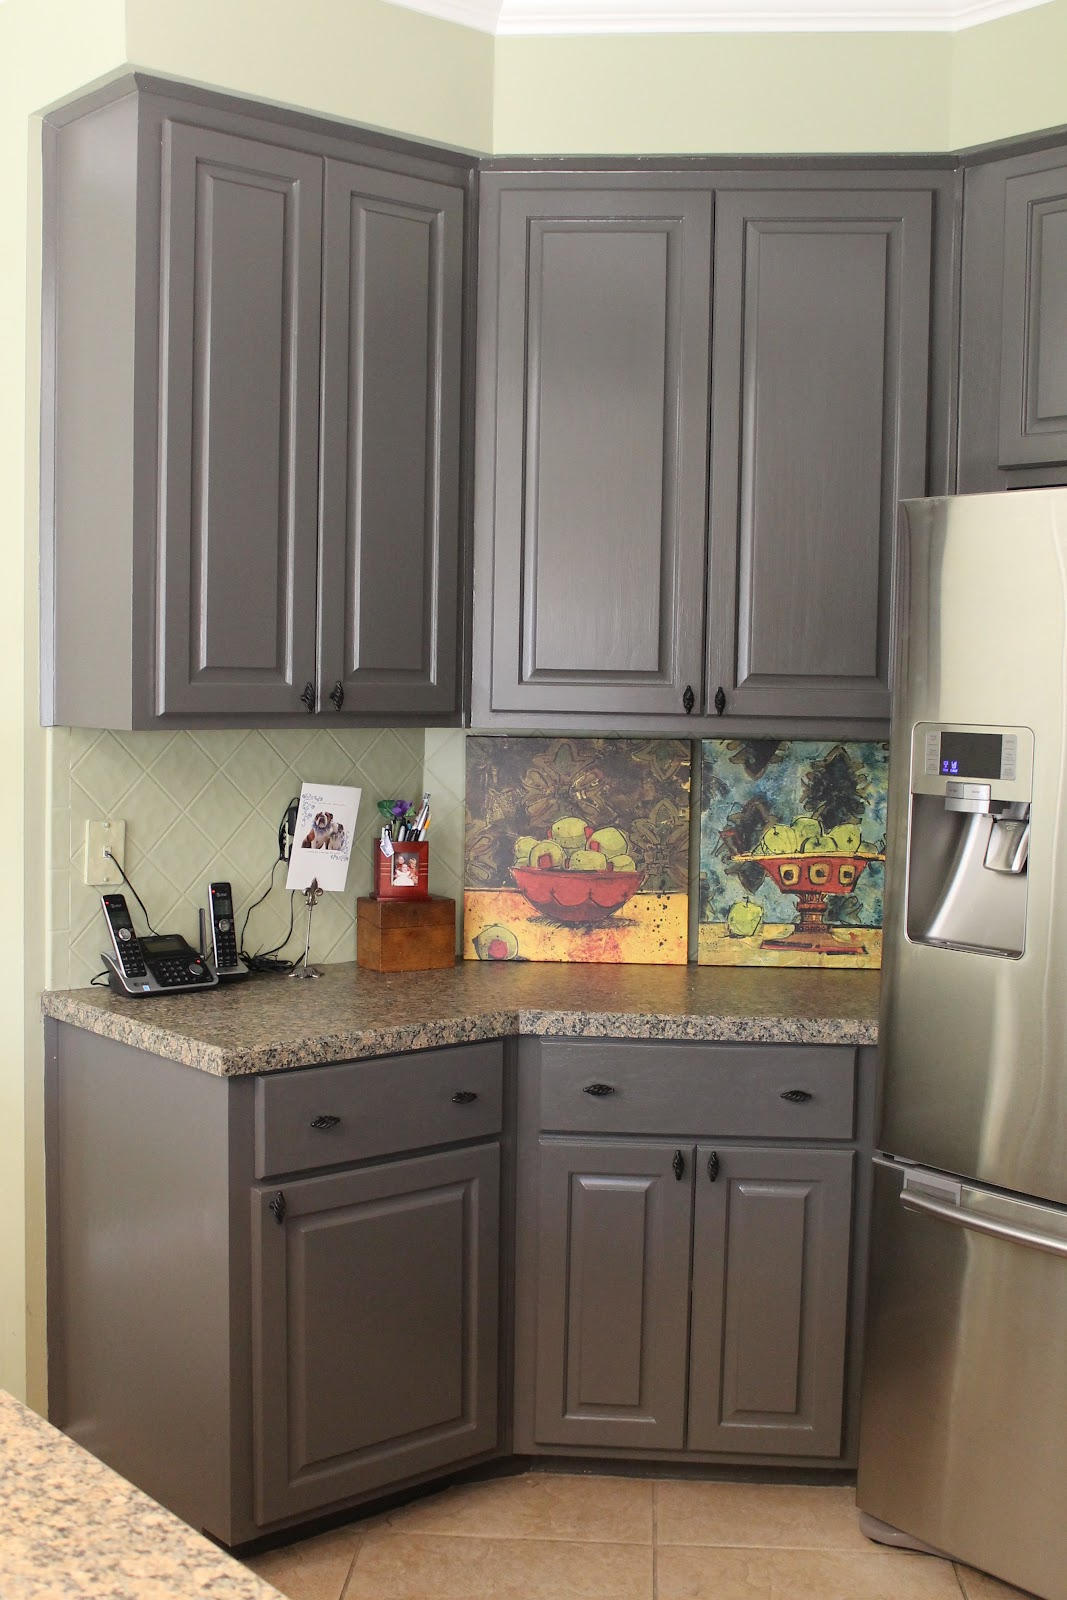 Kitchen mini makeover miss kopy kat Pictures of painted cabinets